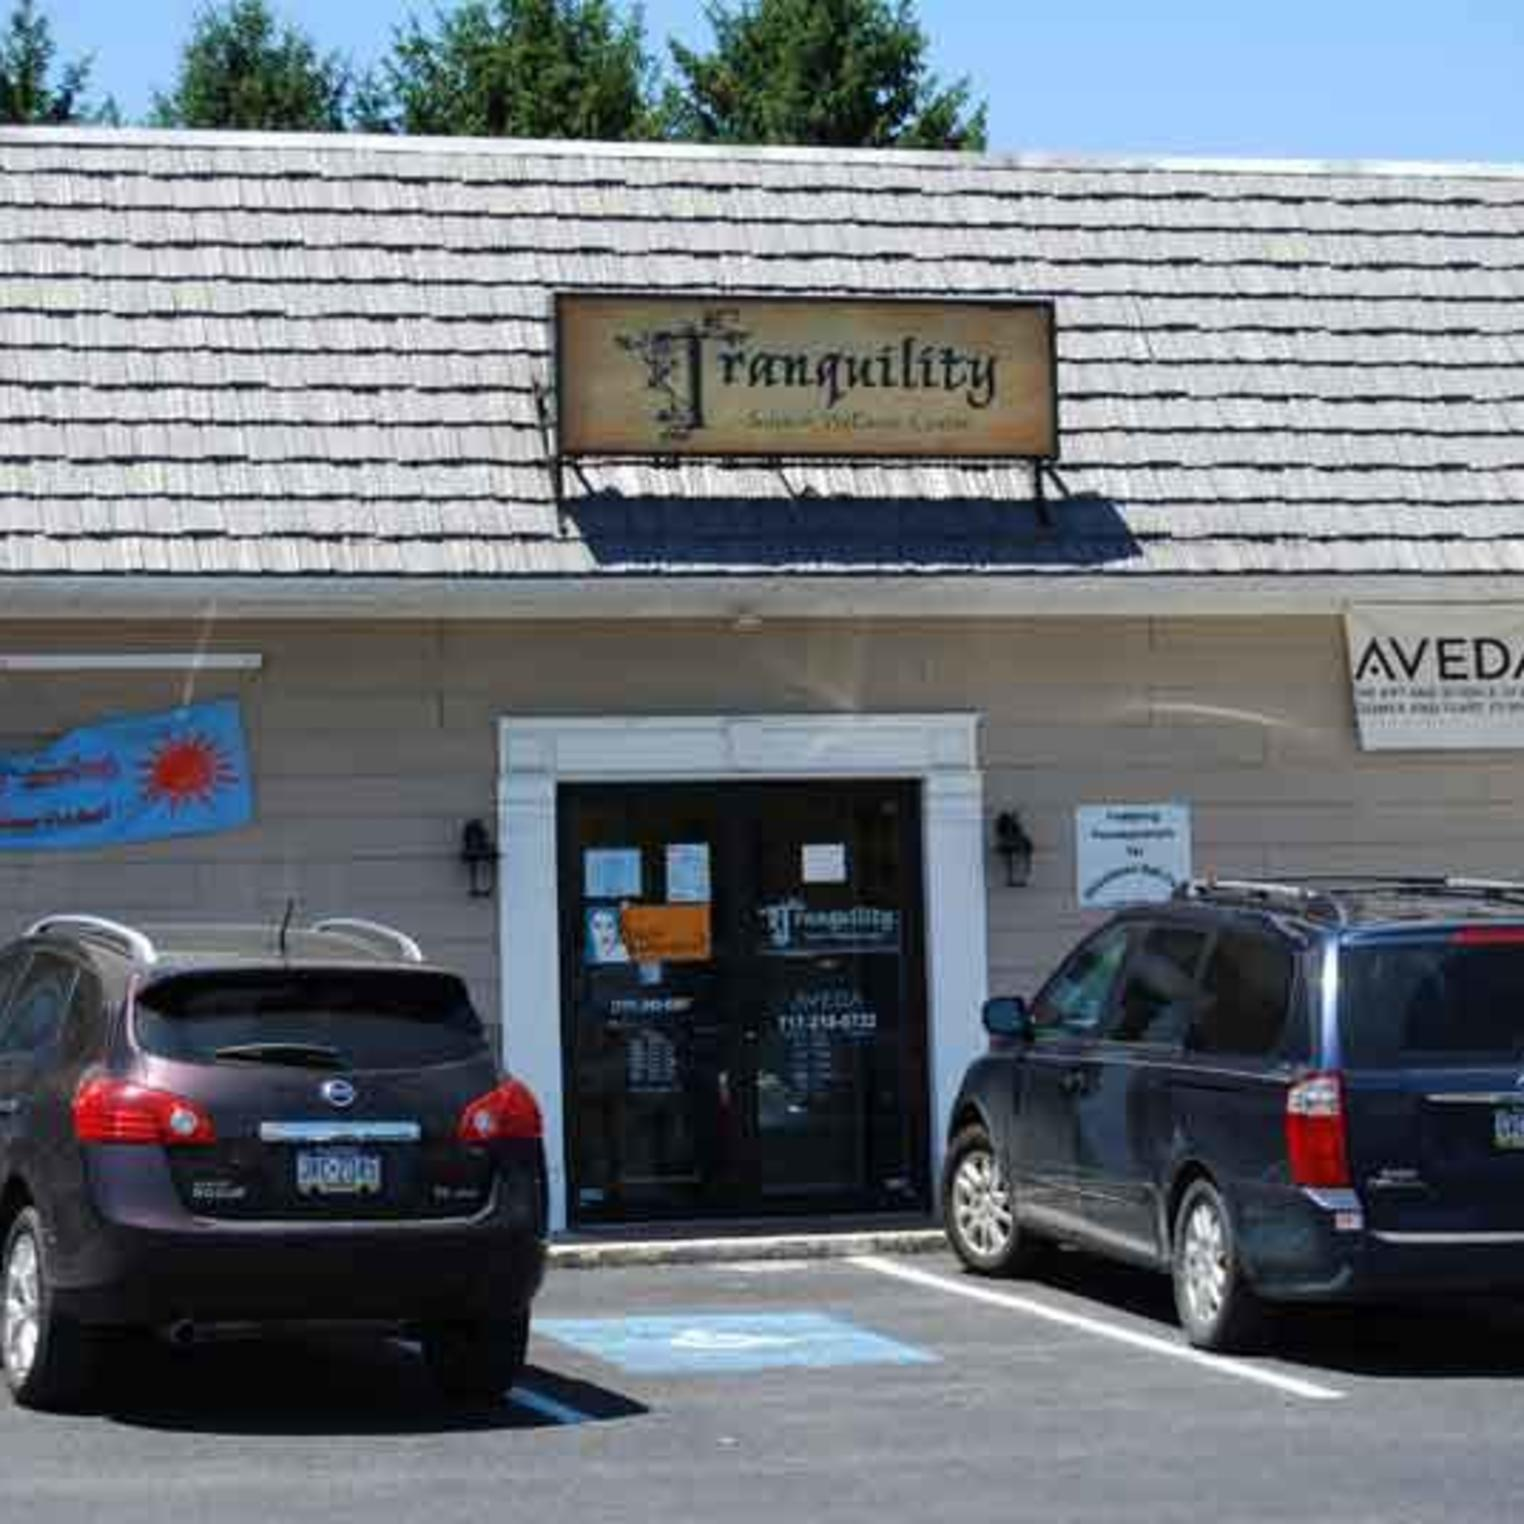 Tranquility Salon & Wellness Center